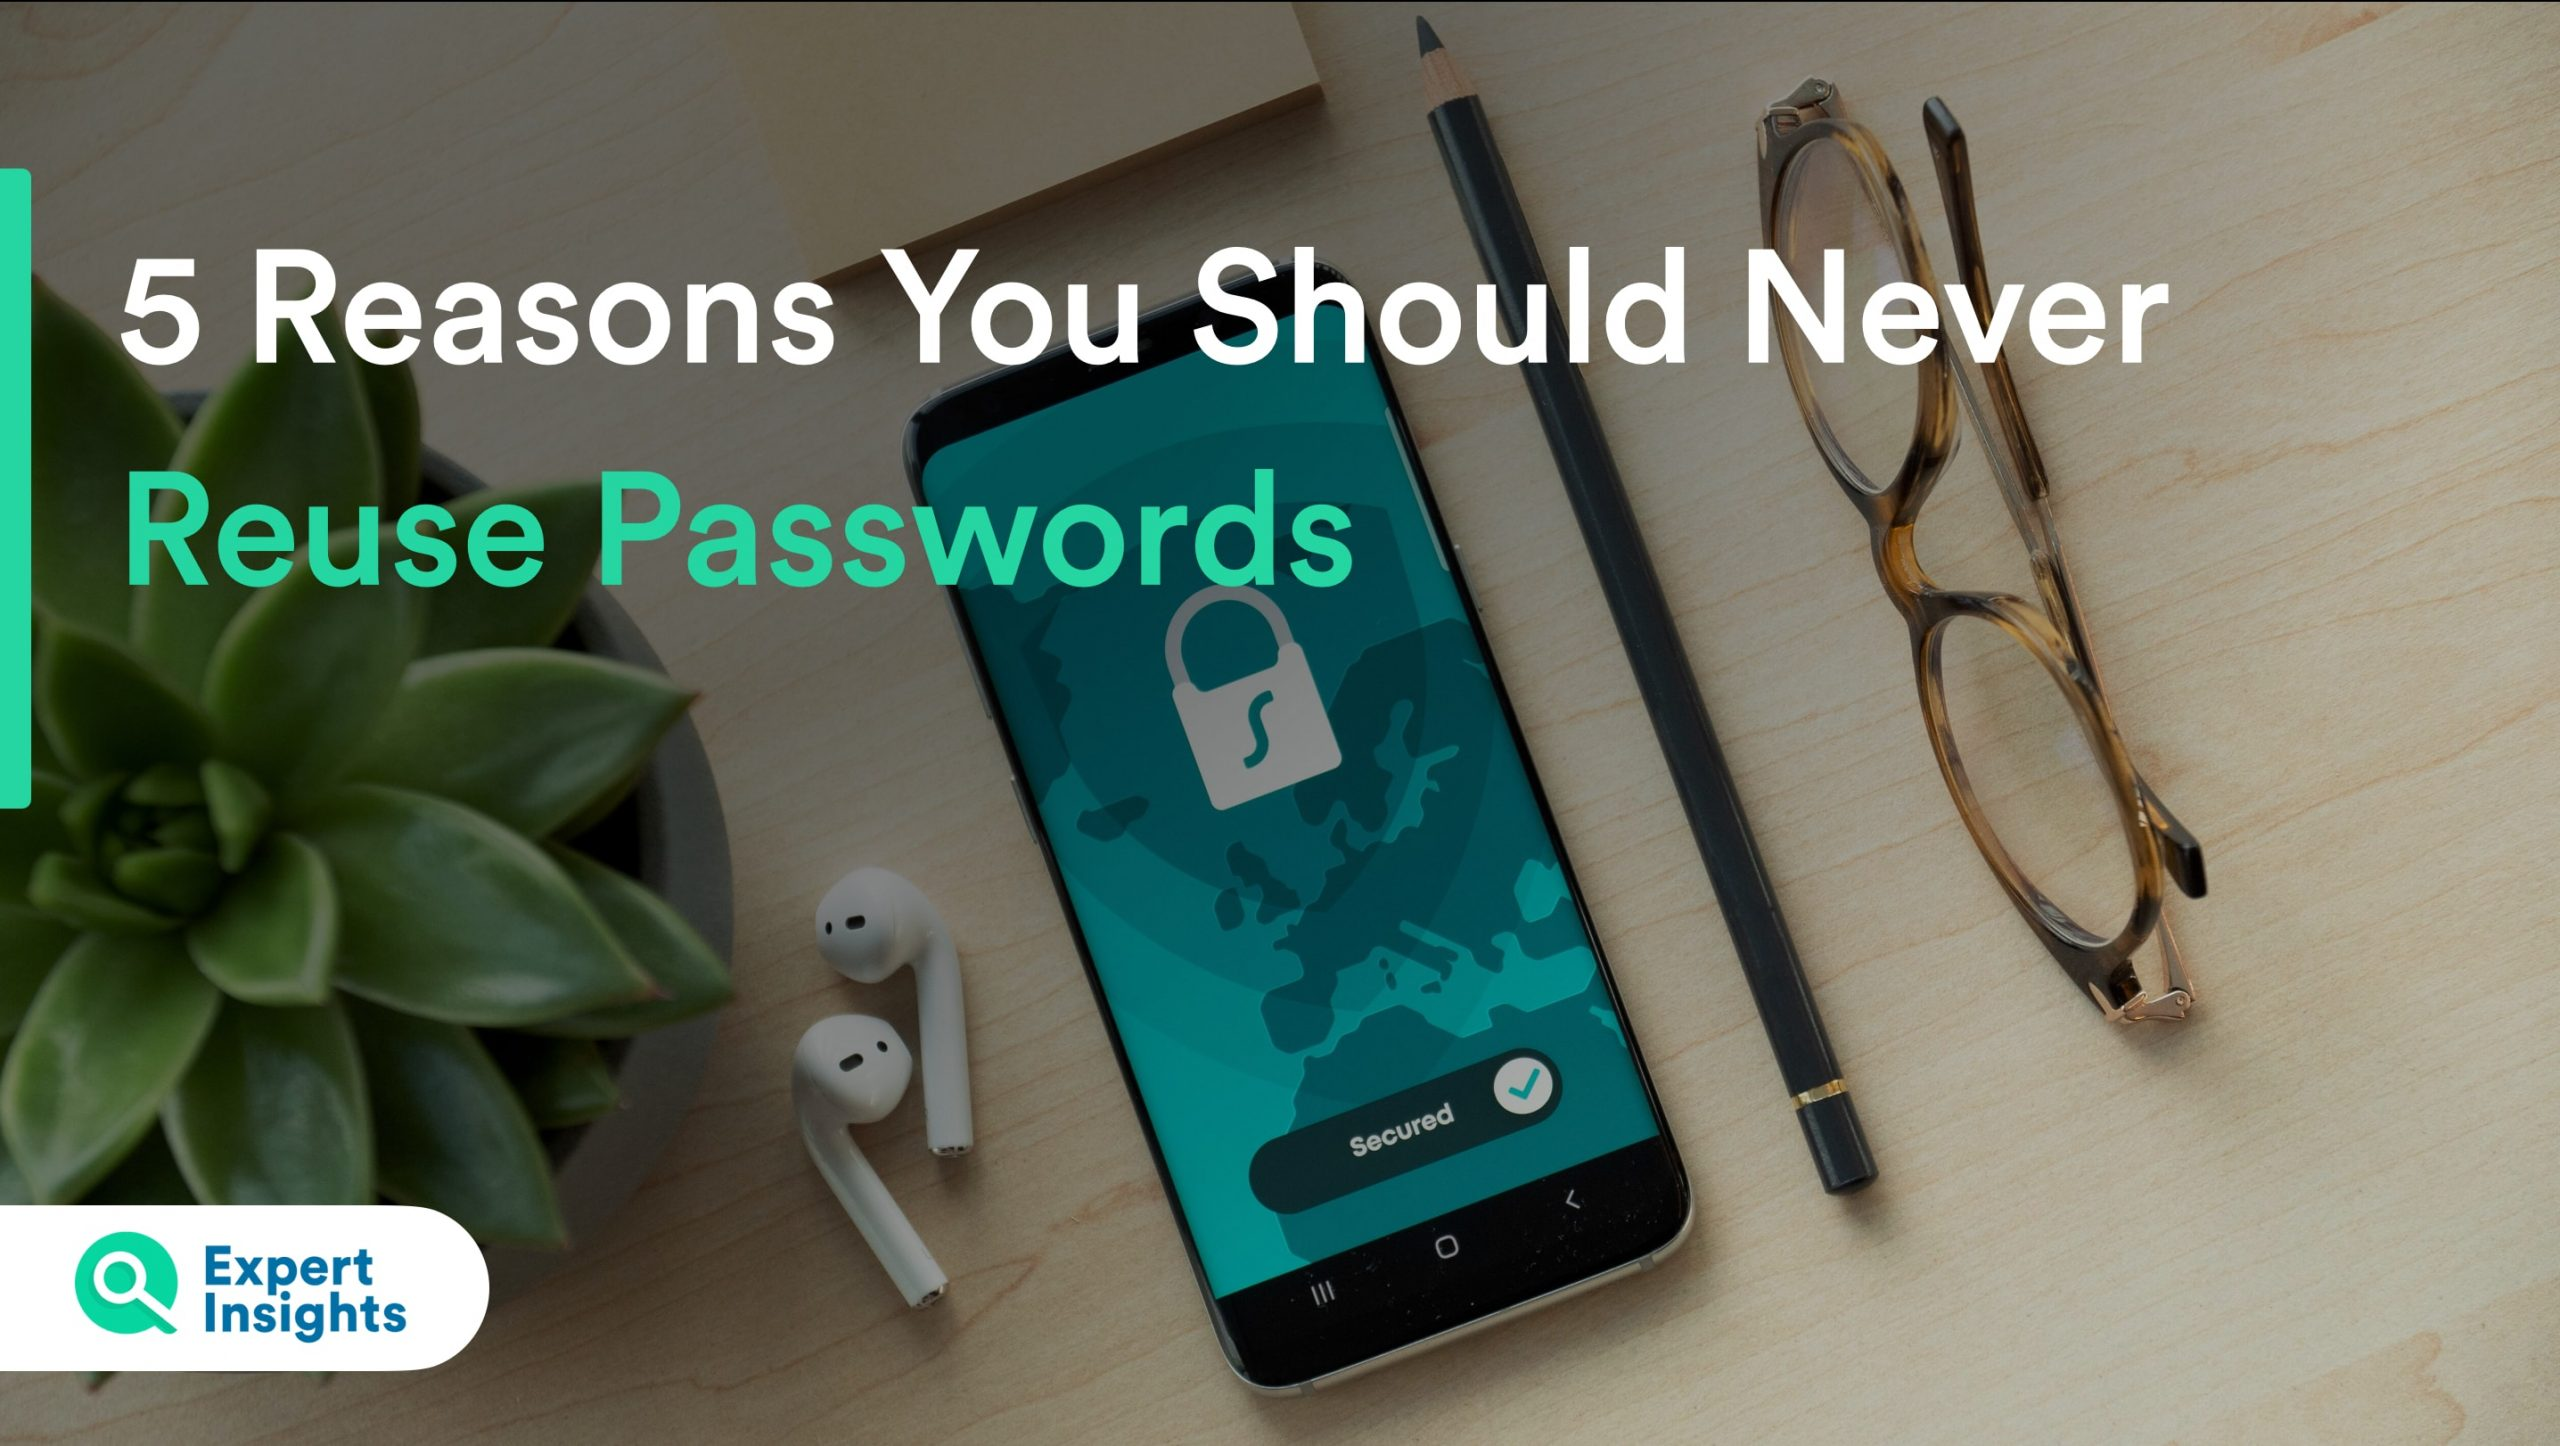 5 Reasons You Should Never Reuse Passwords